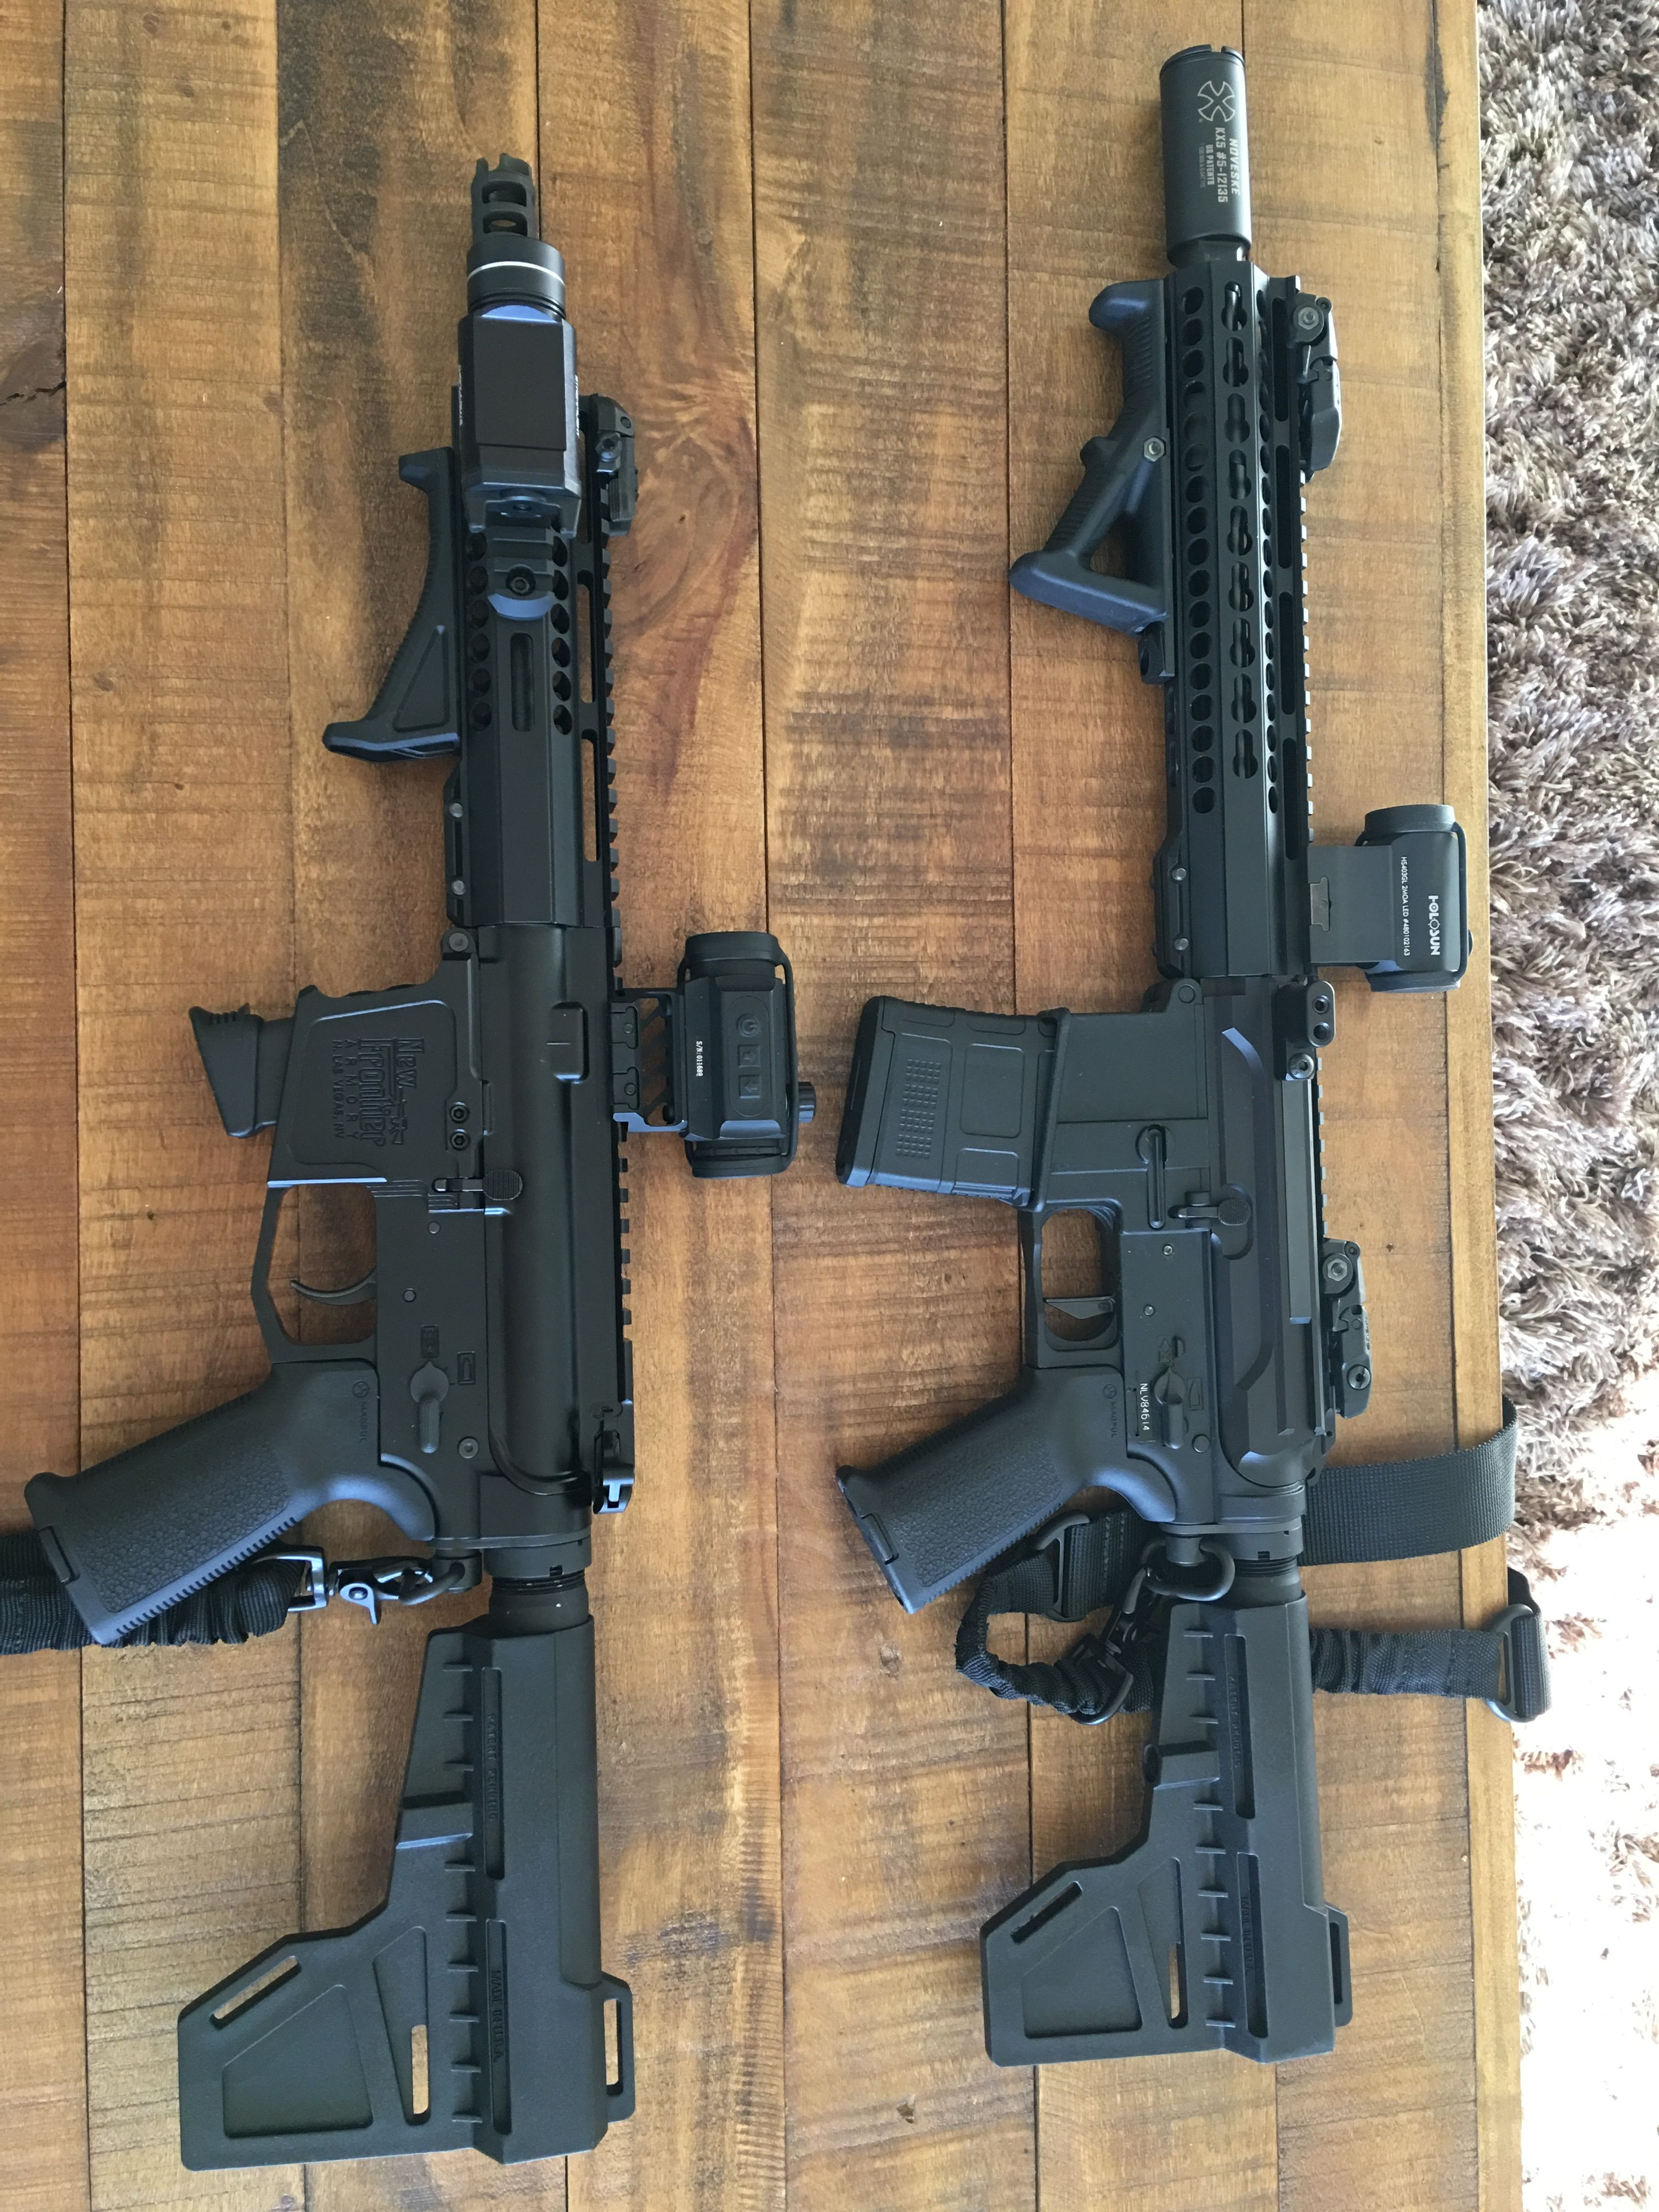 My Ar 15 and AR 9 pistols     build around New Frontier Armory